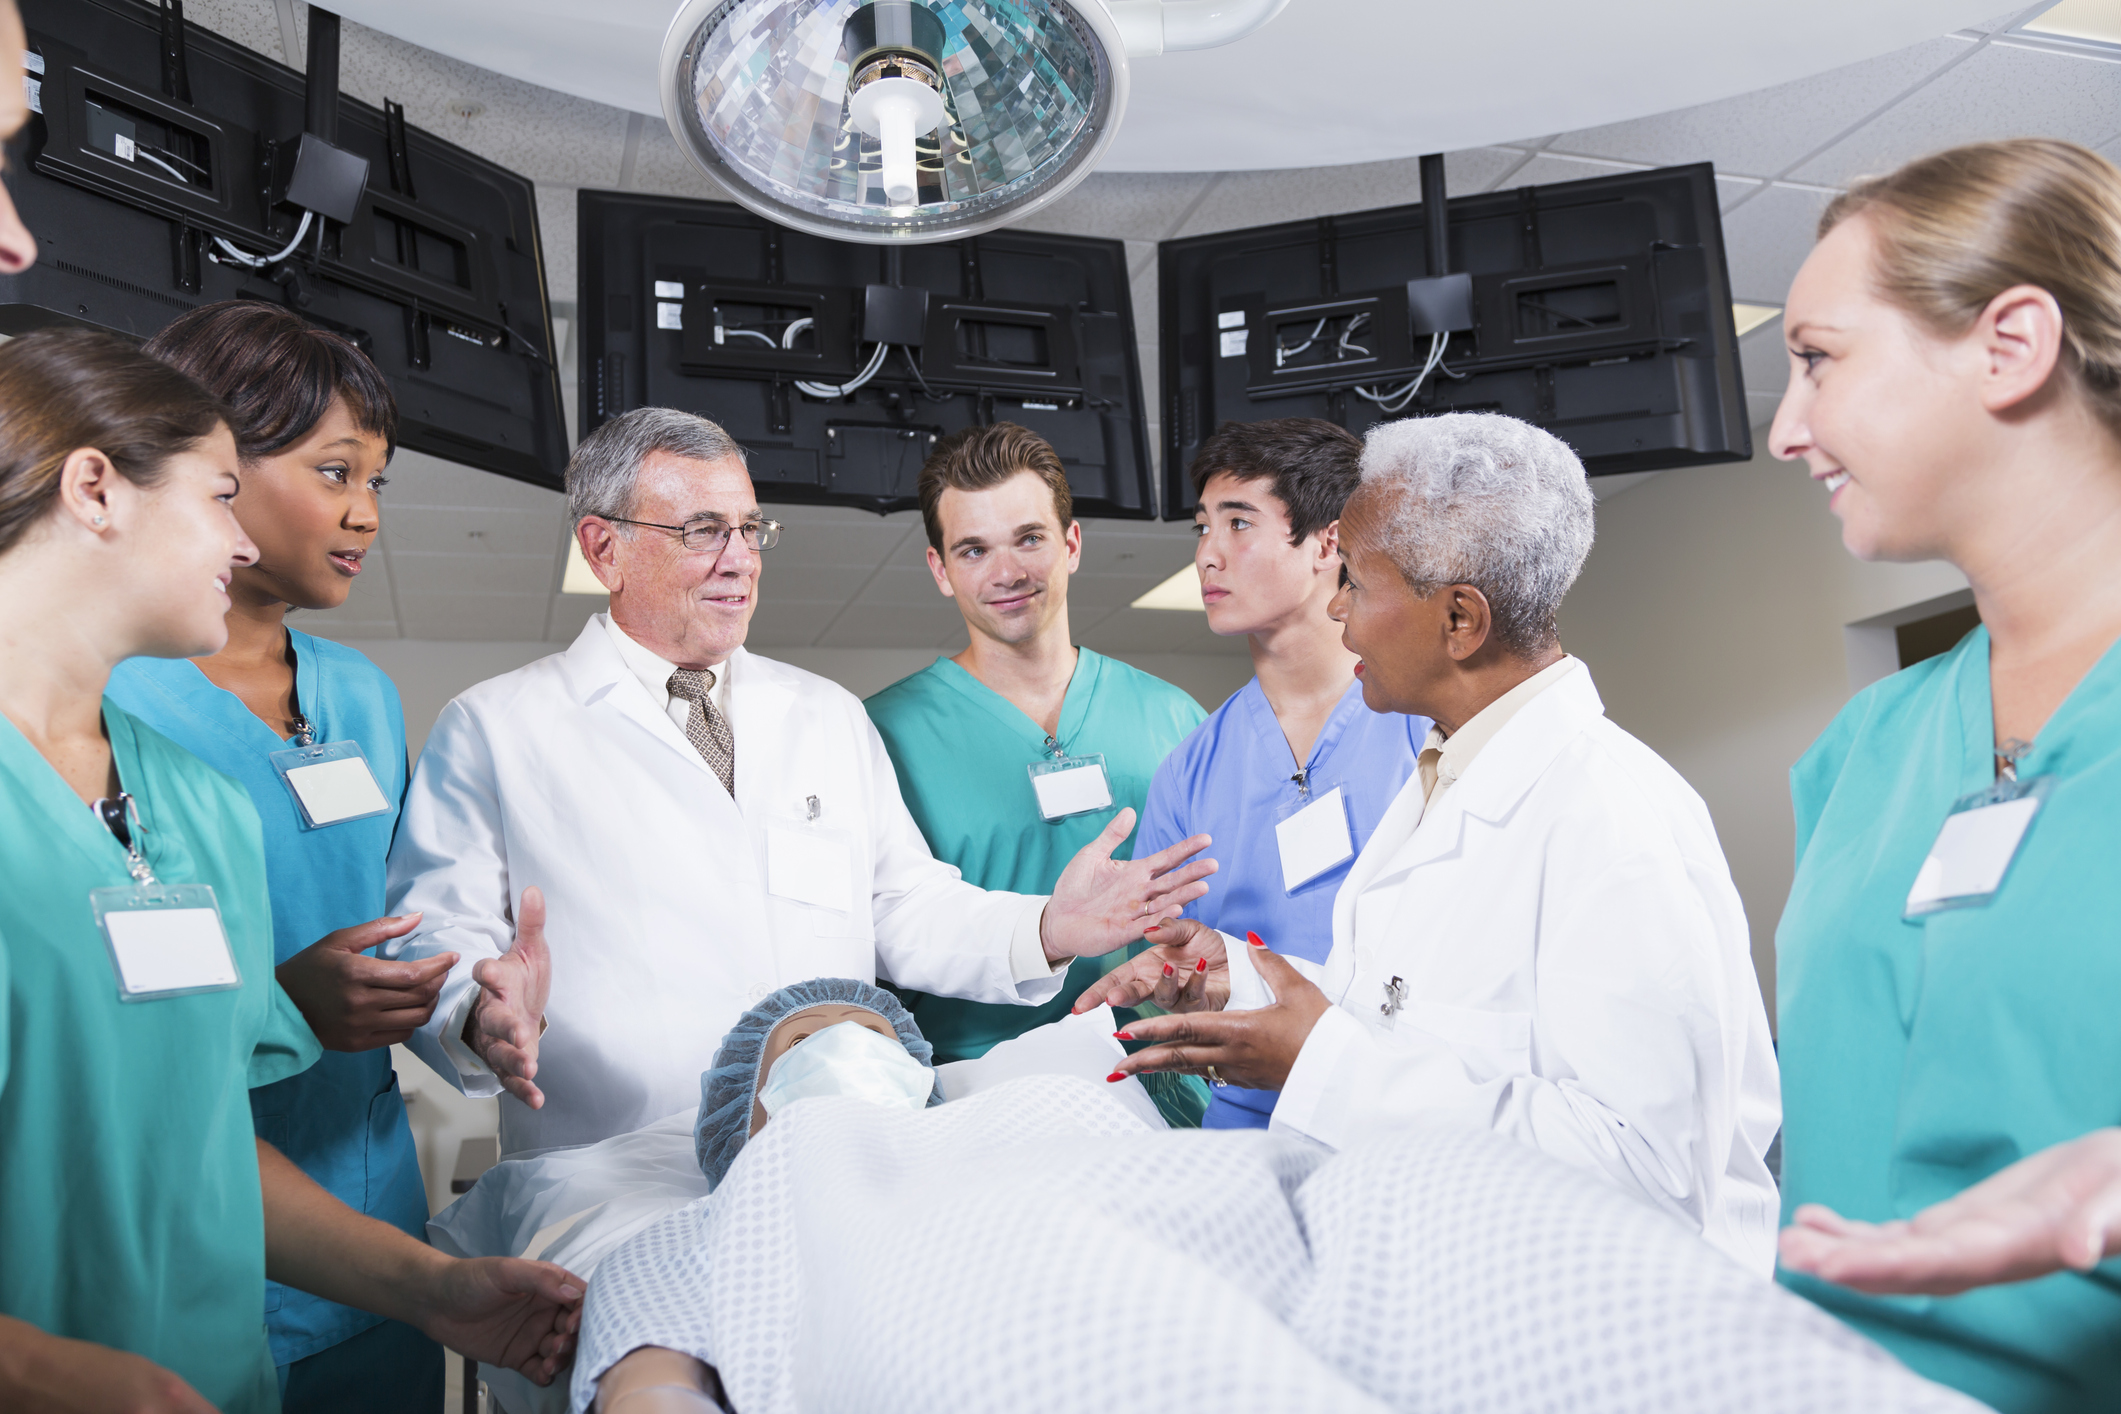 Lessons From In and Outpatient Shadowing Experiences